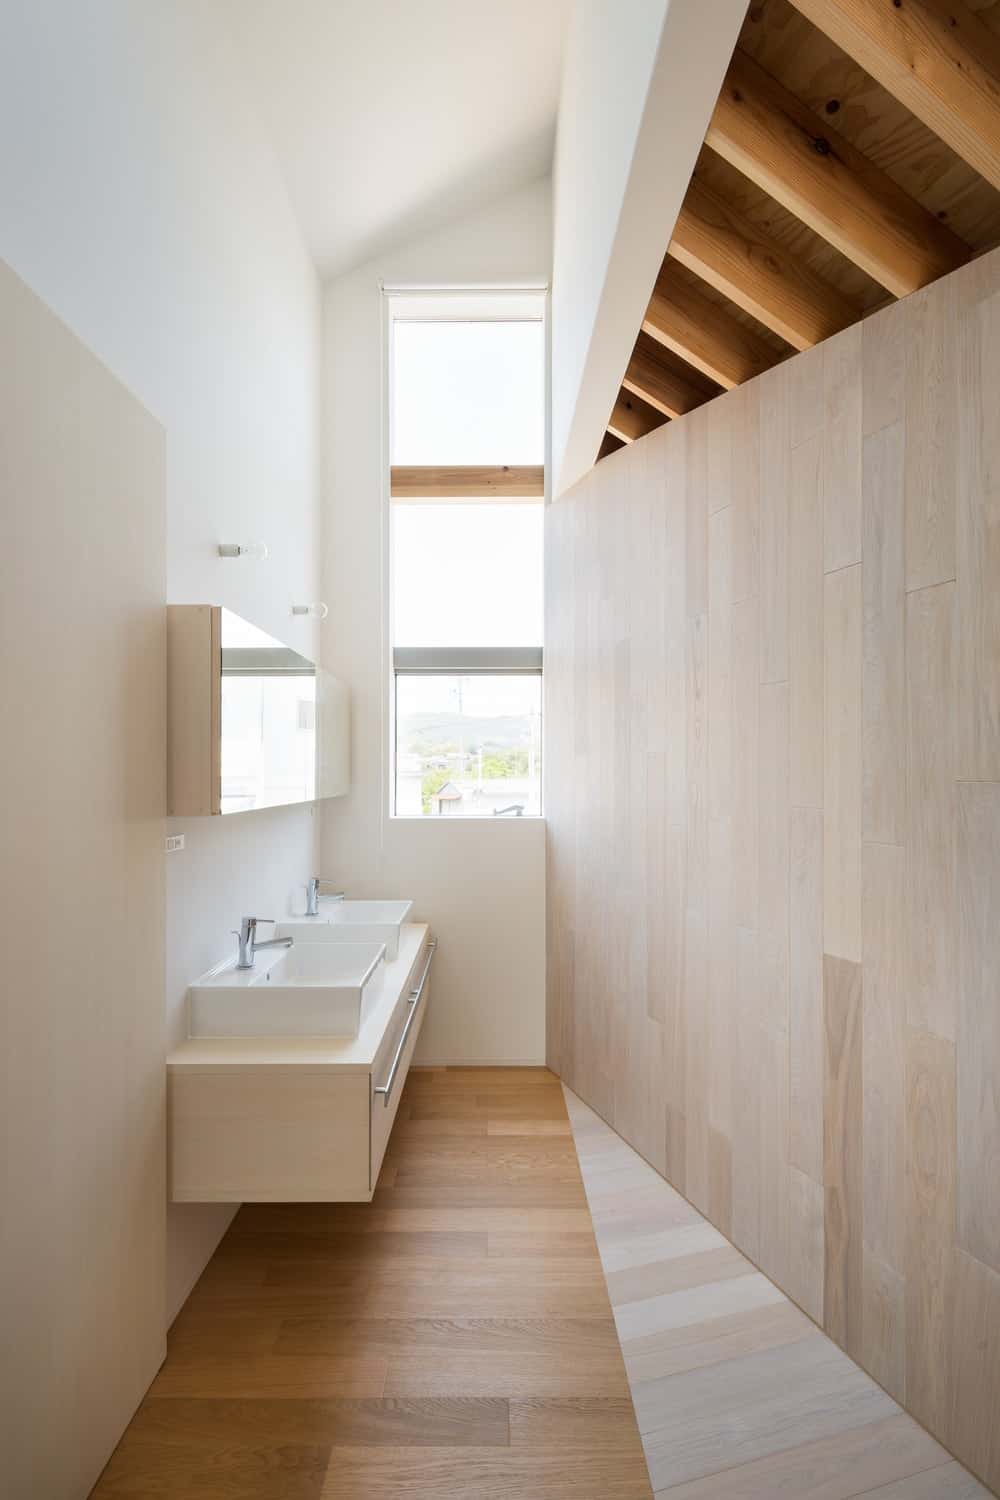 This is the bathroom with a two-sink floating vanity with a beige tone that lets it blend with the wall.